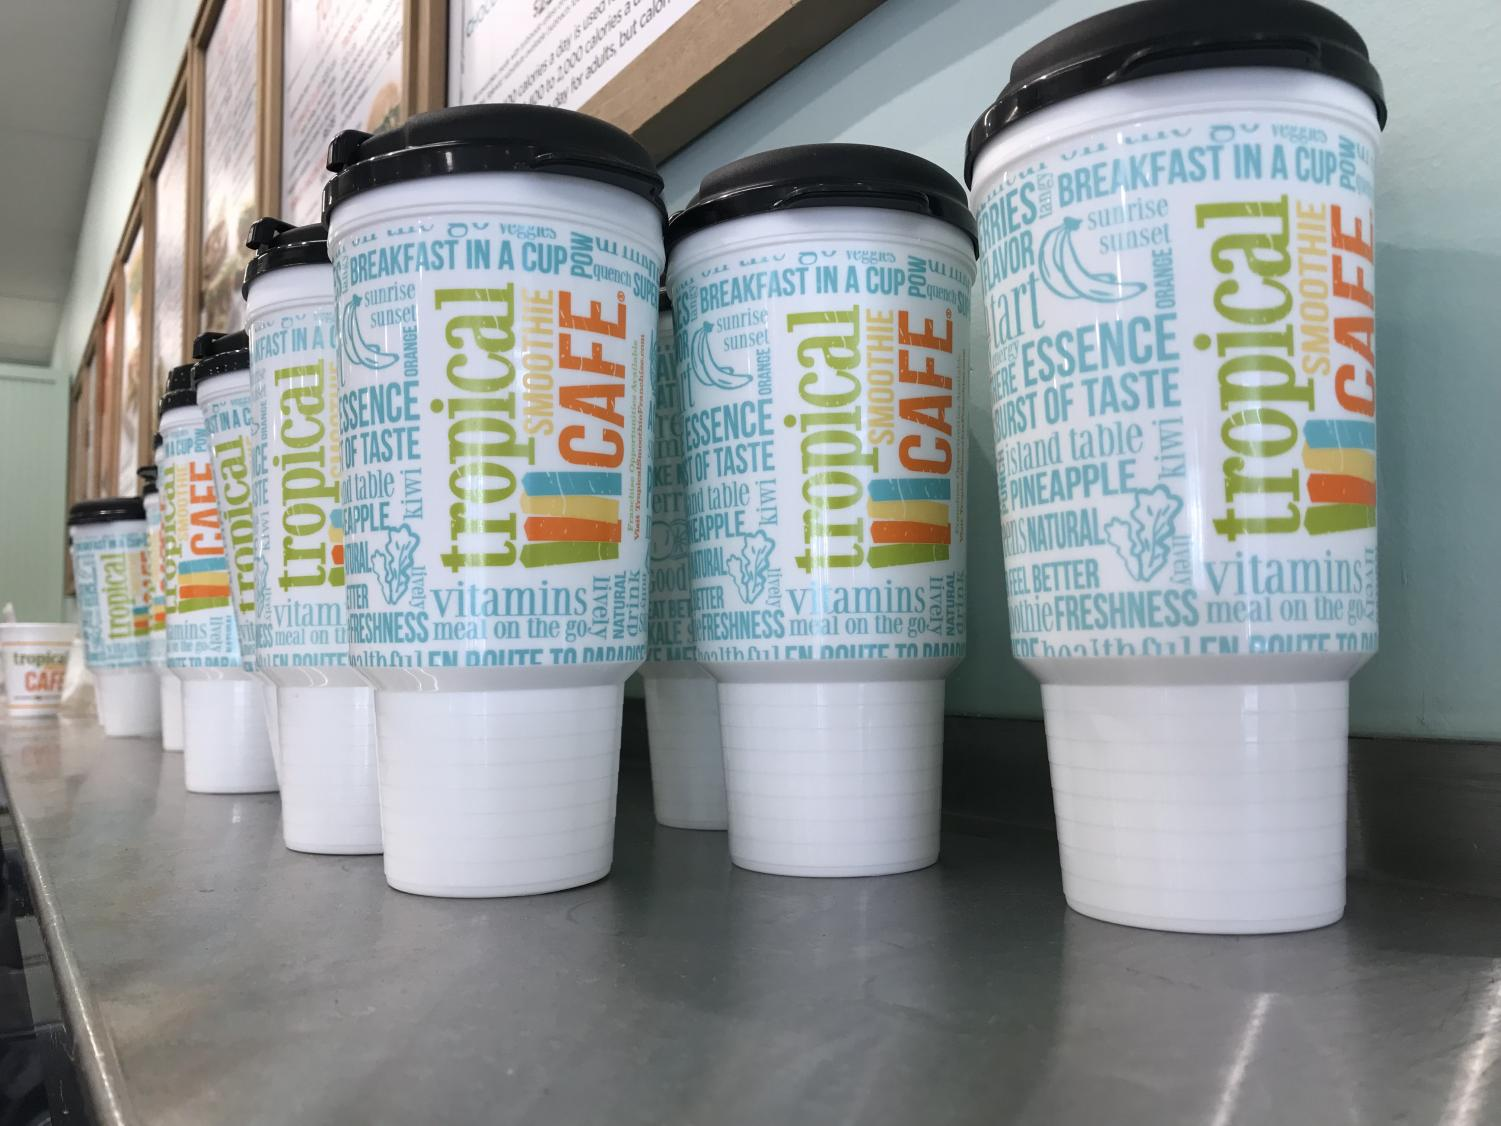 The reusable cups from Tropical Smoothie Cafe. Photo Credit: Grace Crowley